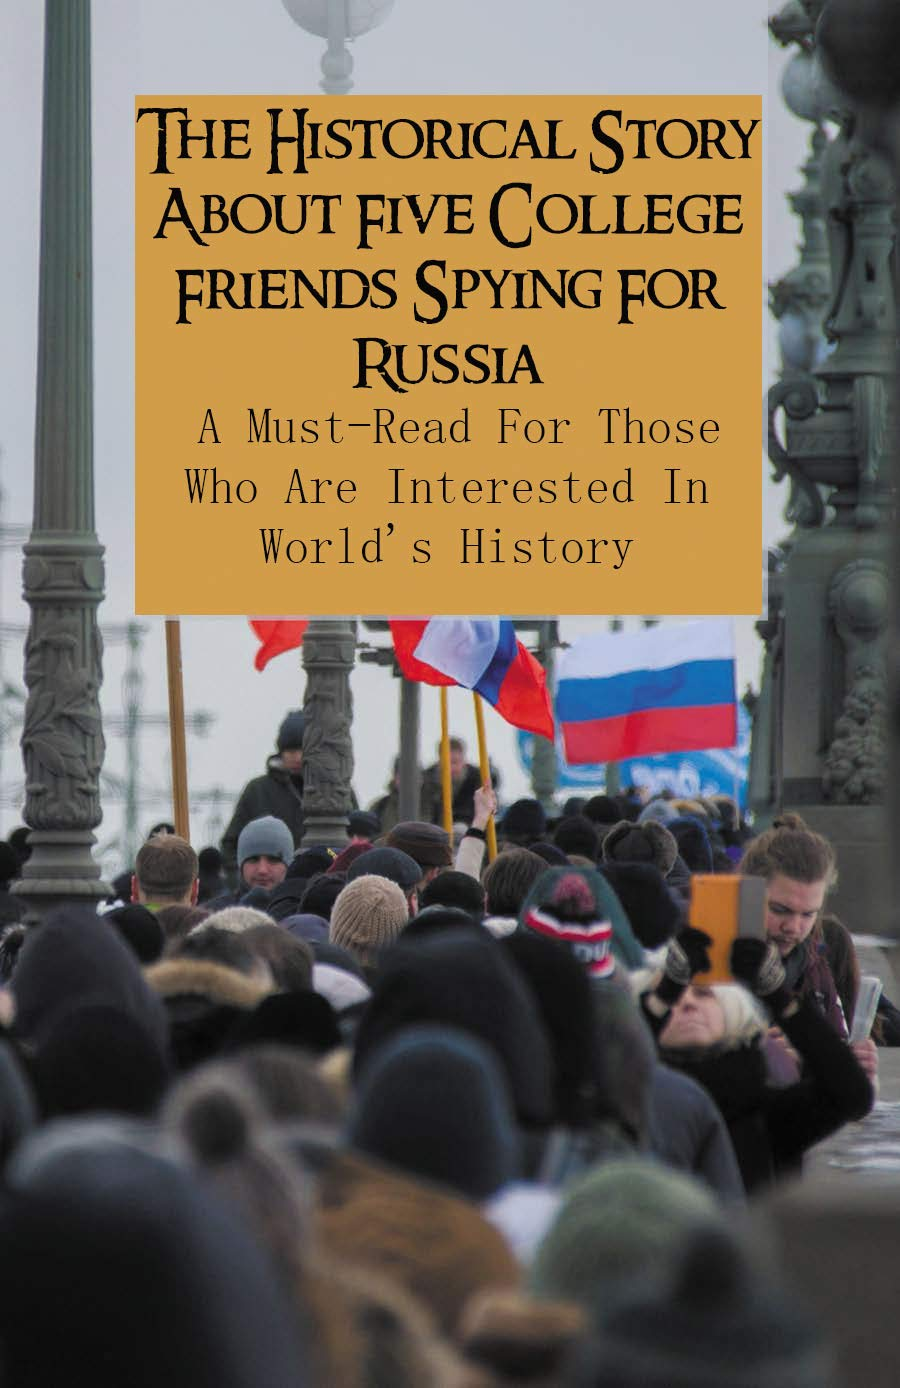 The Historical Story About Five College Friends Spying For Russia: A Must-Read For Those Who Are Interested In World's History: Russian Spy Books Fiction